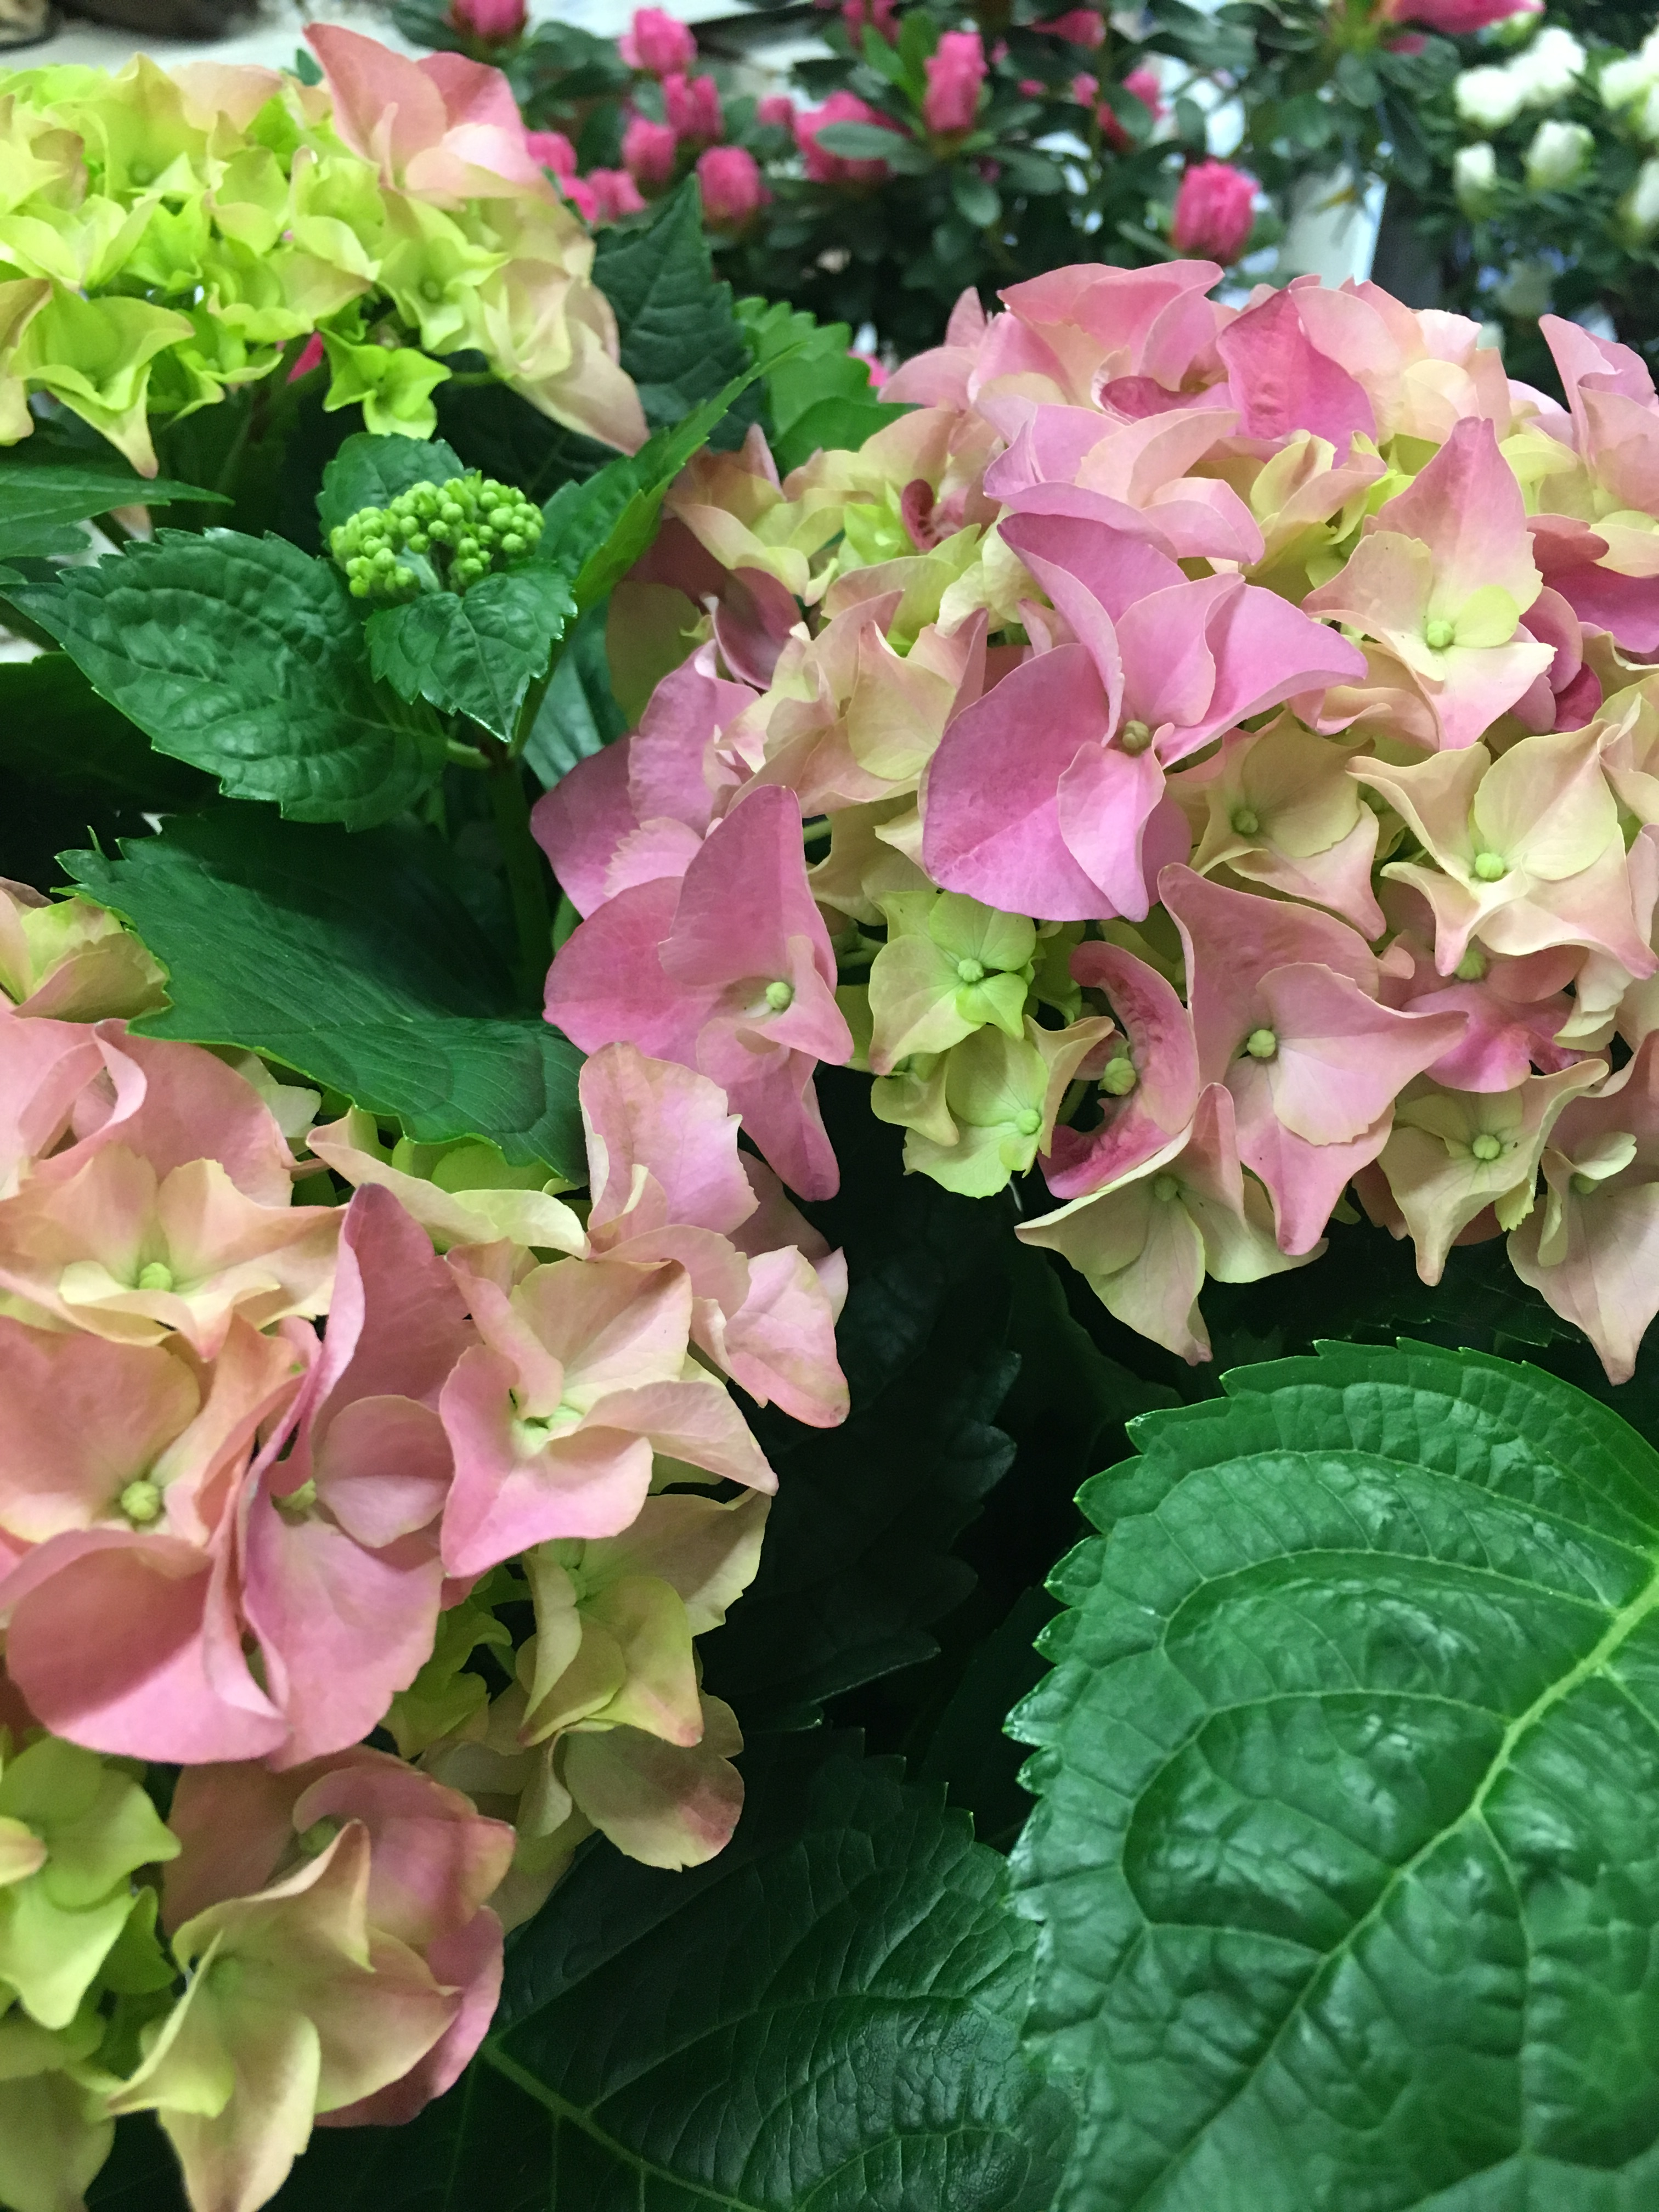 Img3942 randymcmanusdesignsincs blog along with our always beautiful orchids and cut flowers were loving these hydrangea plants and azaleas all make perfect gifts img3942 izmirmasajfo